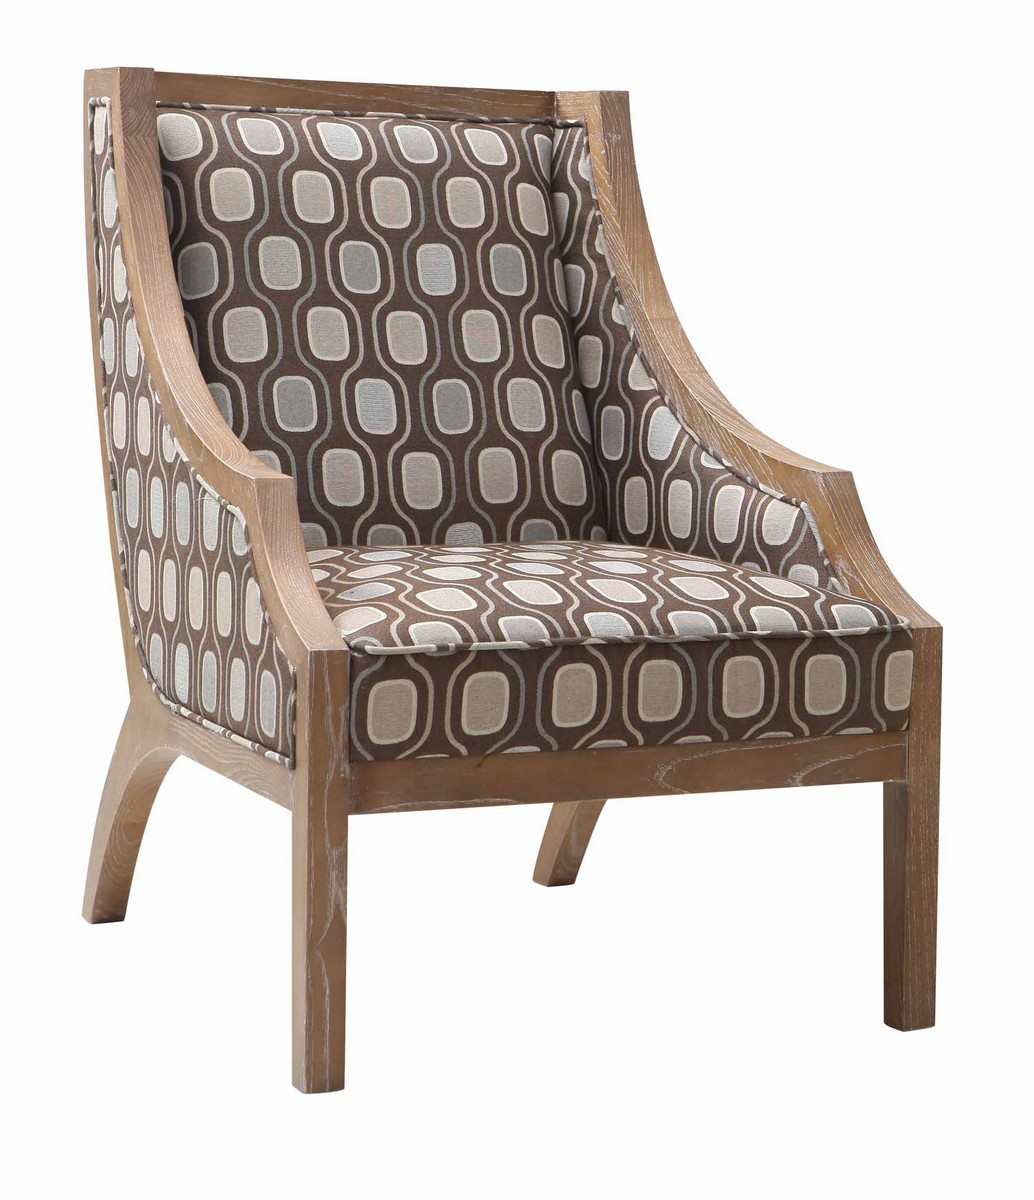 Armen Living Sahara Accent Chair - Multi Colored